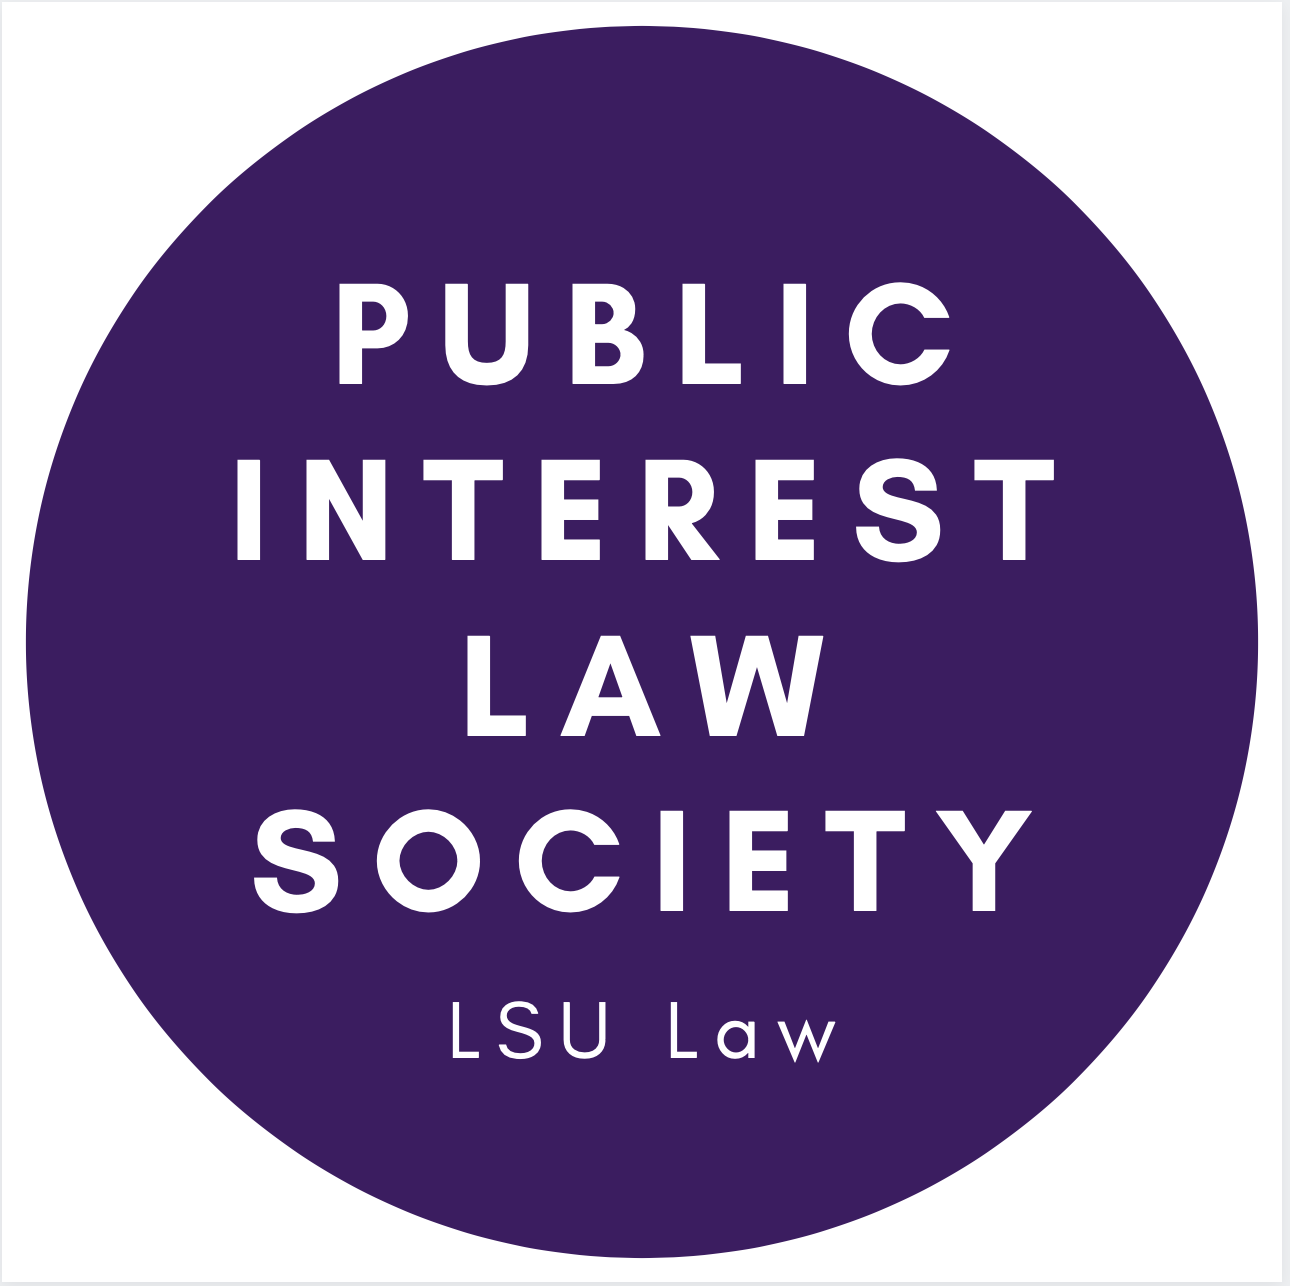 LSU LAW PUBLIC INTEREST LAW SOCIETY